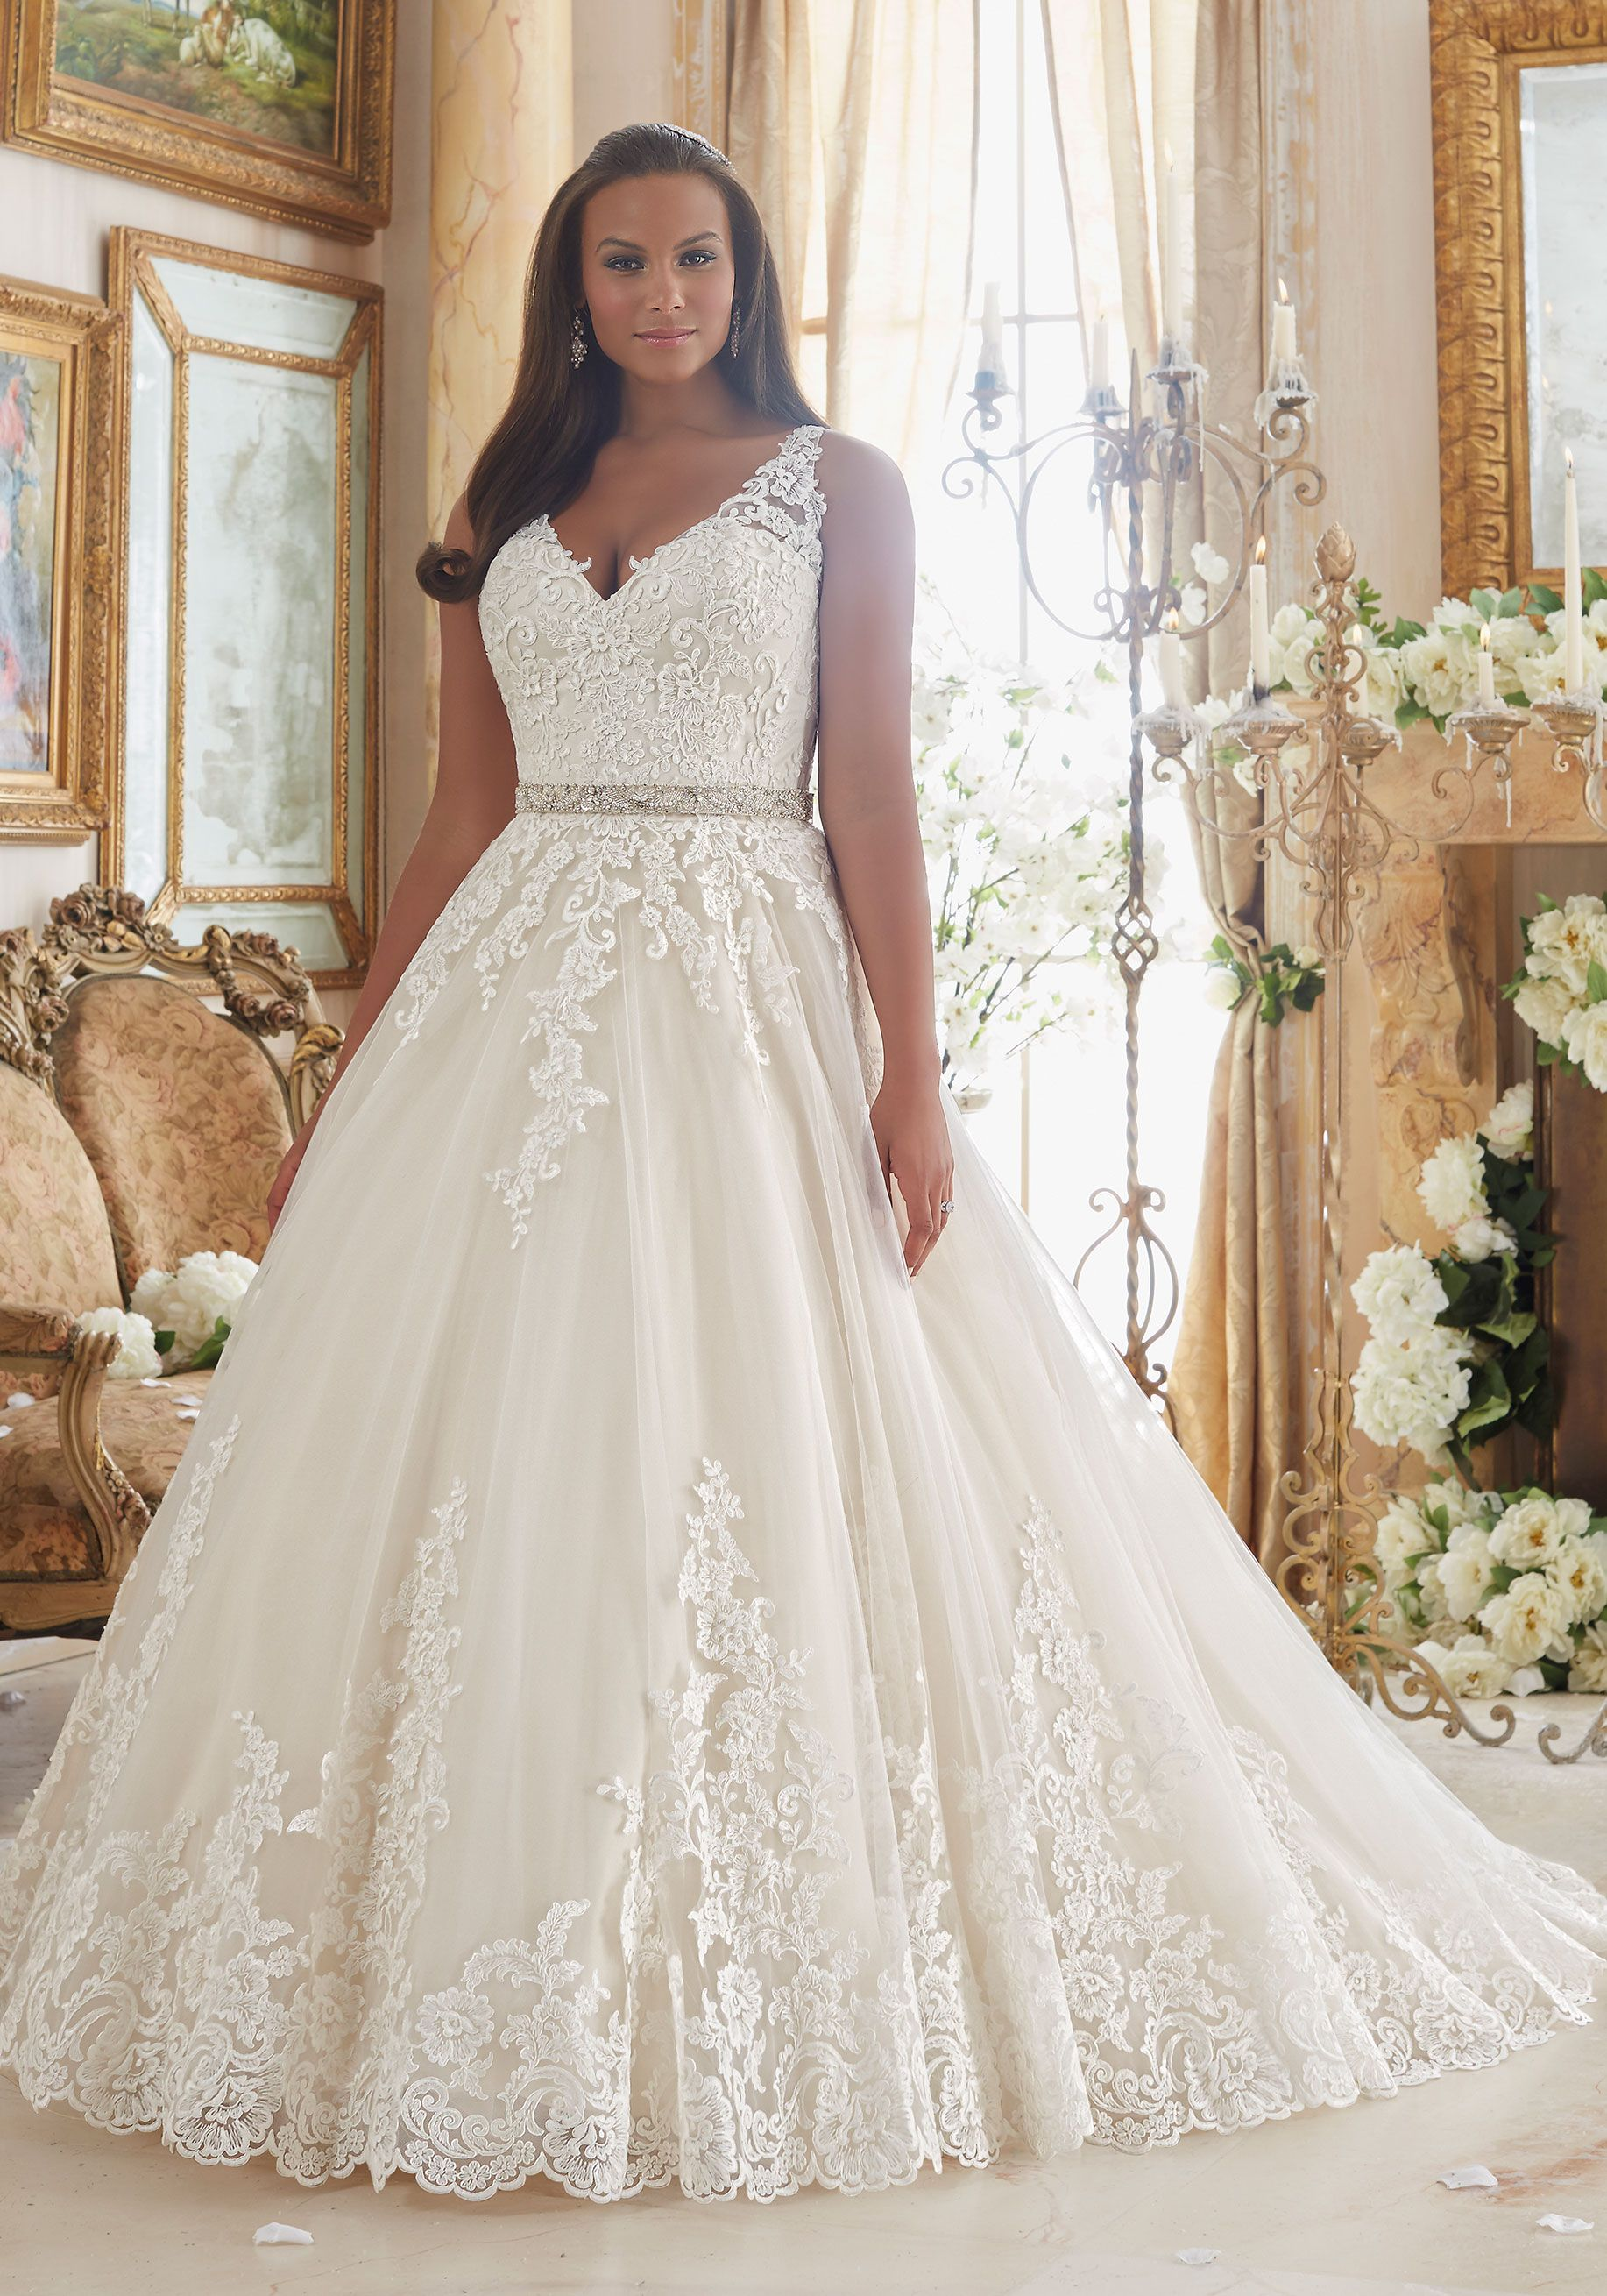 Embroidered Lace Appliques On Tulle Ball Gown With Scalloped Hemline